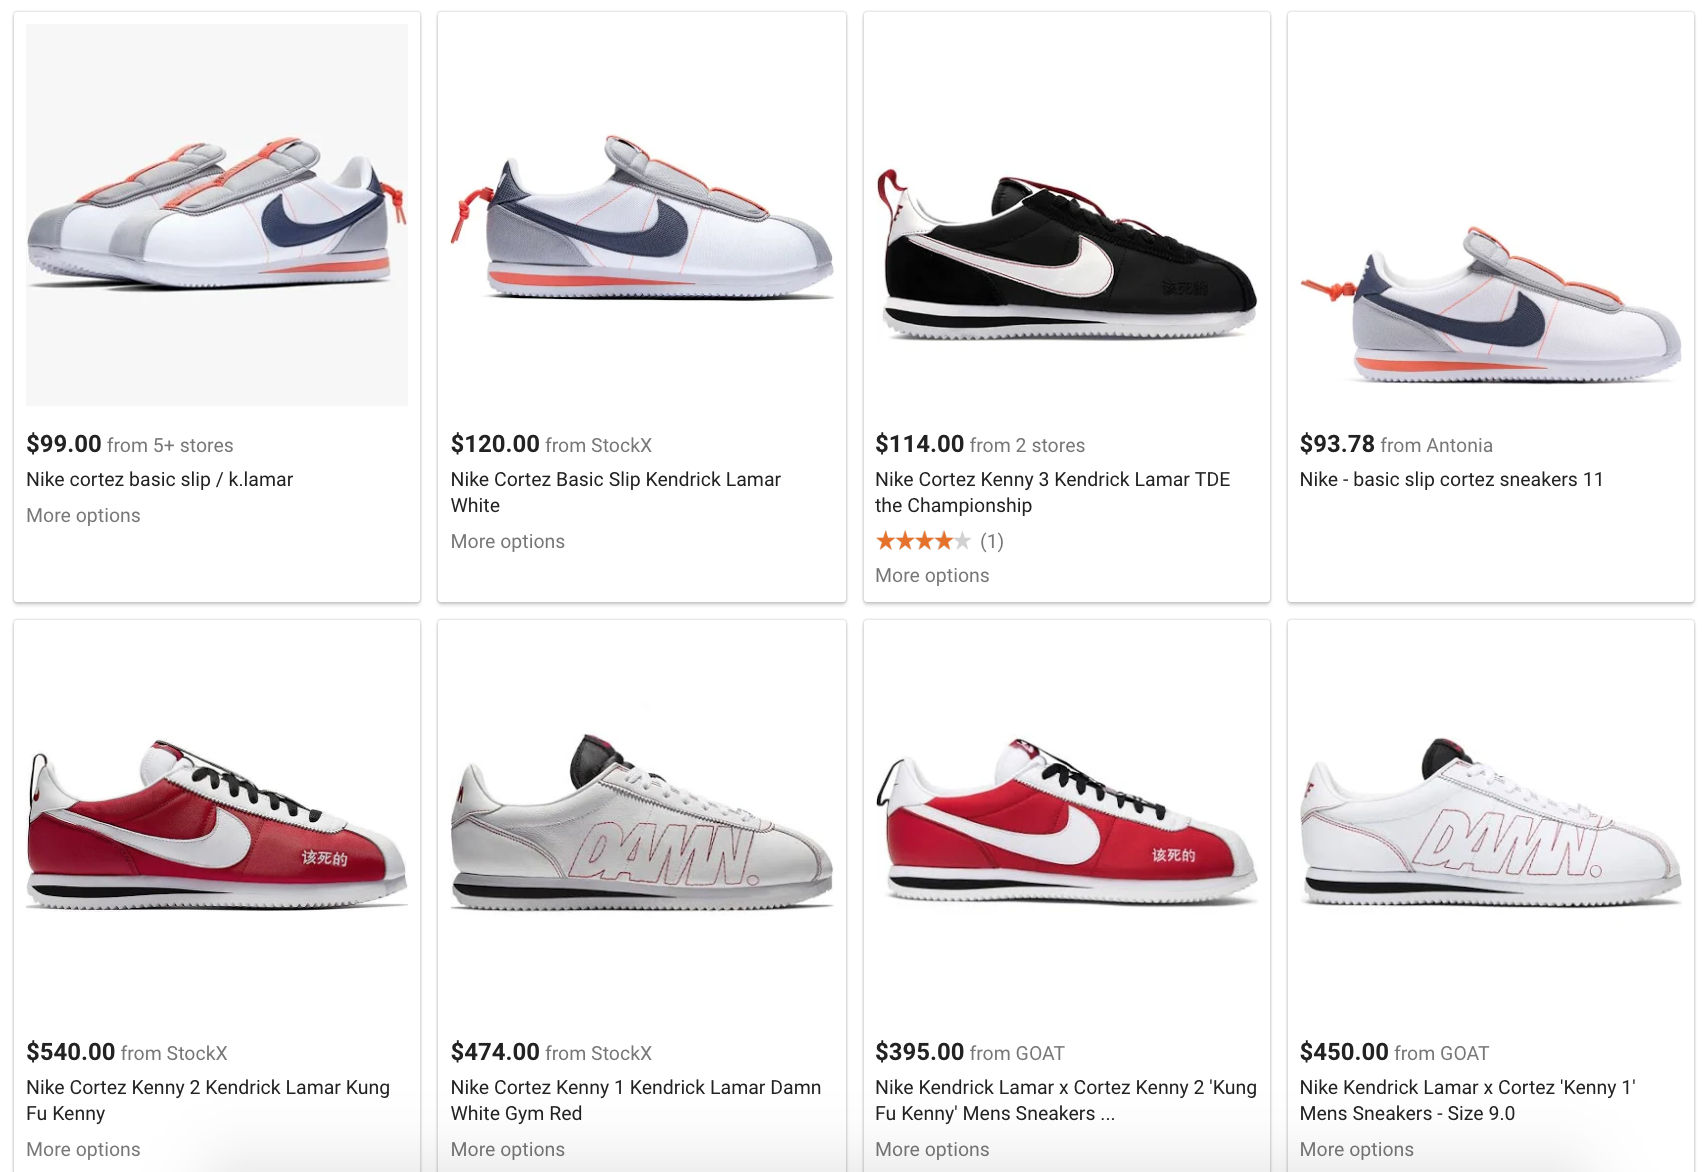 reputable site 3e061 98b9c Jet.com and Amazon Sell Nikes. But Not the Cool Ones.